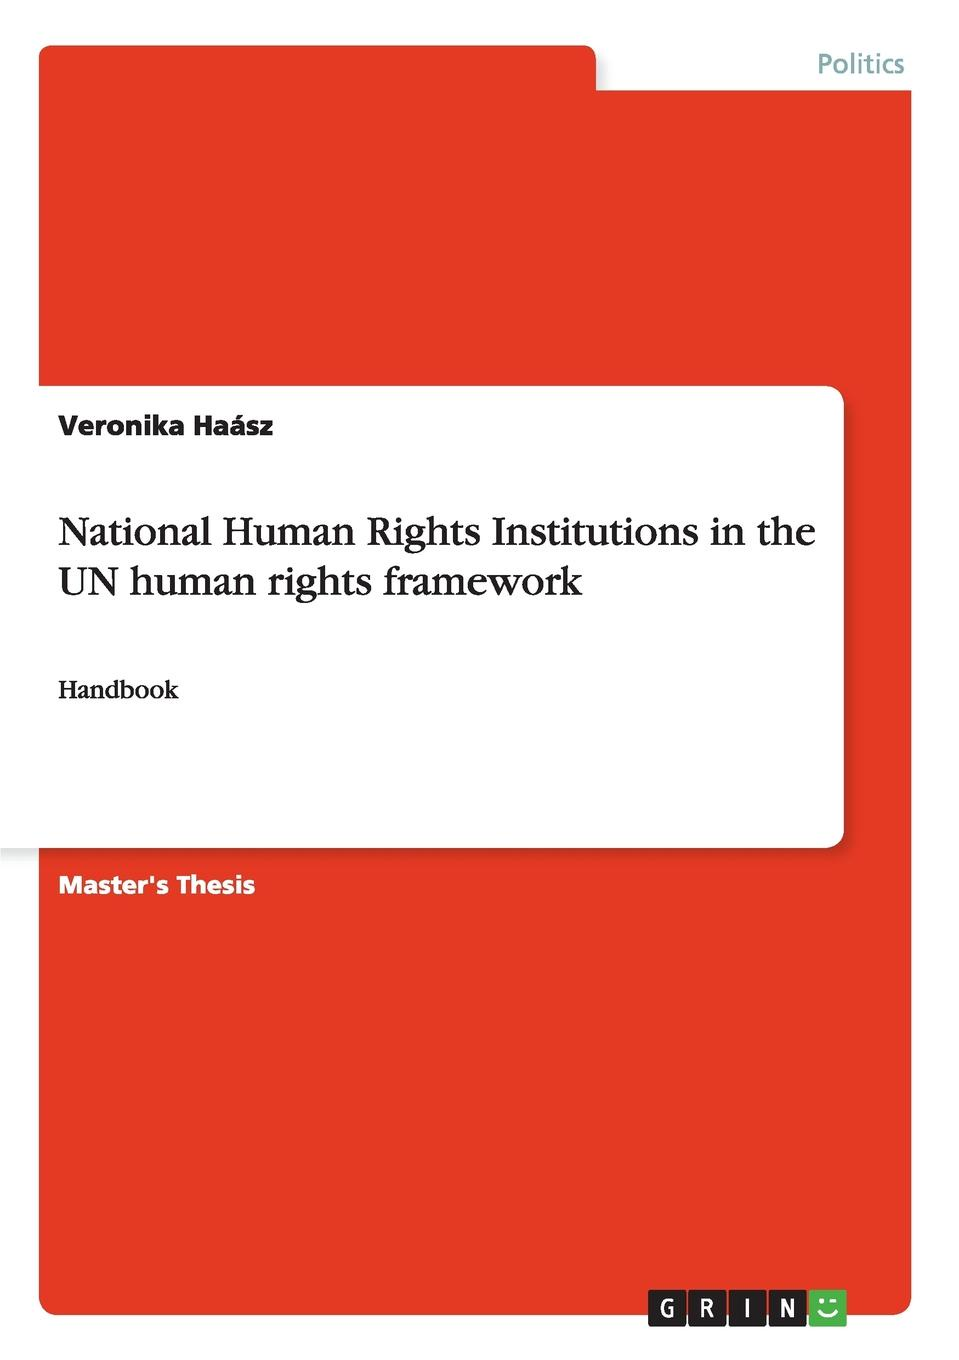 Veronika Haász National Human Rights Institutions in the UN human rights framework